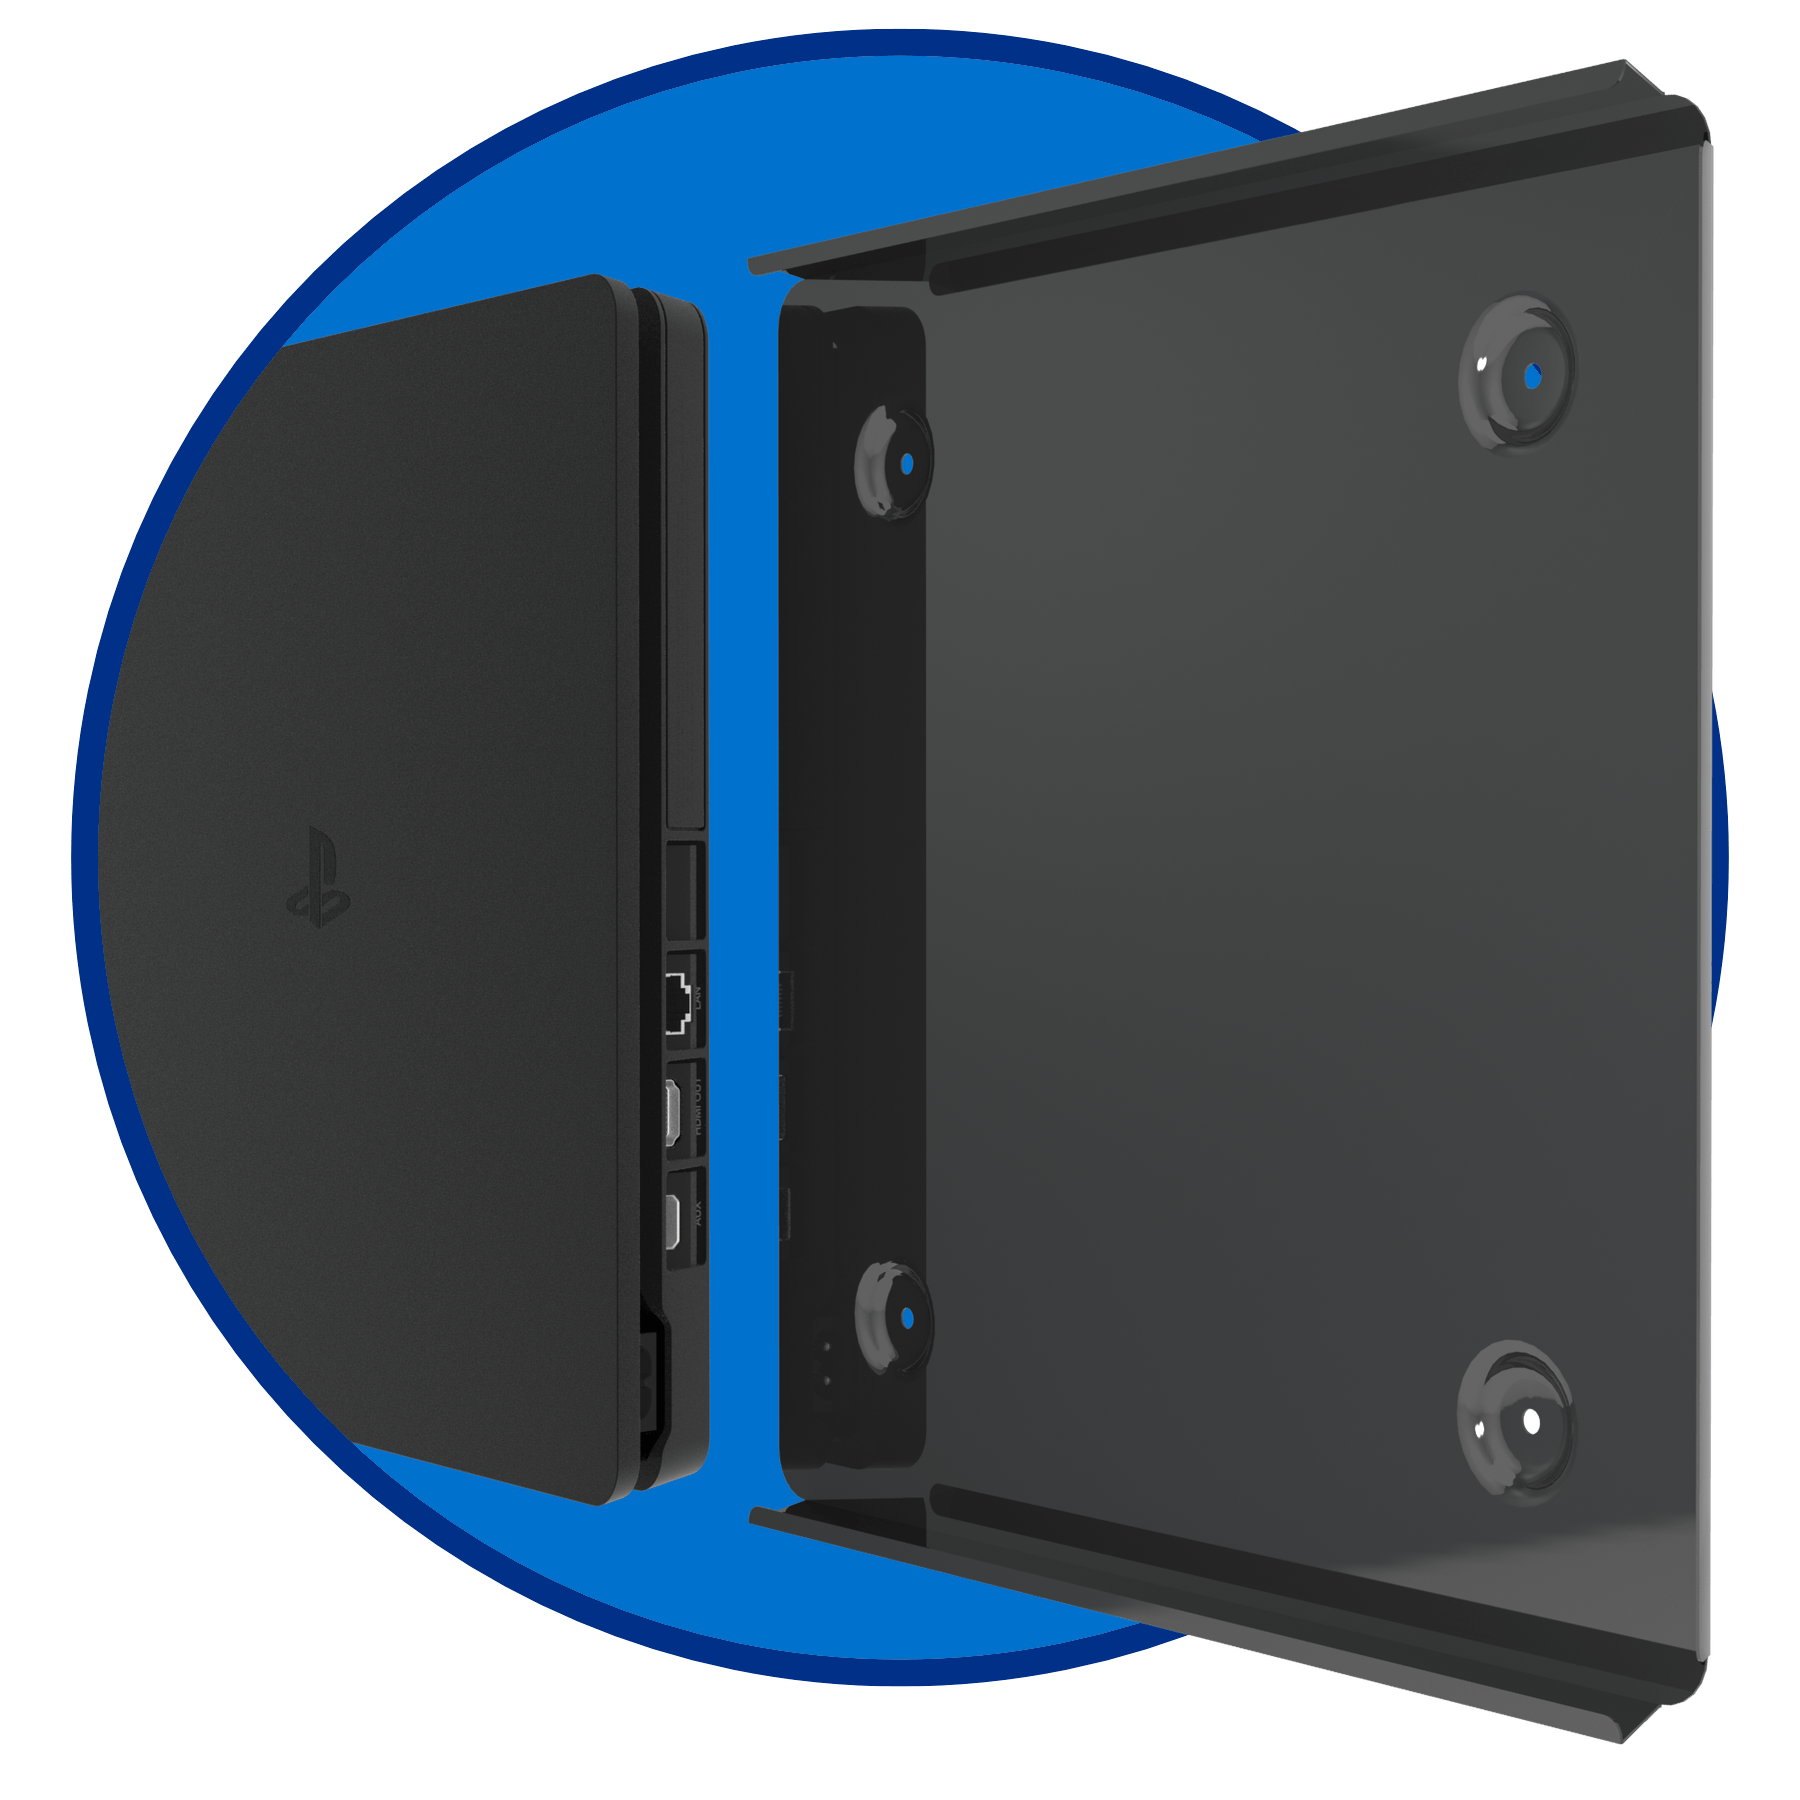 Ps4 Slim Wall Mount Forza Designs